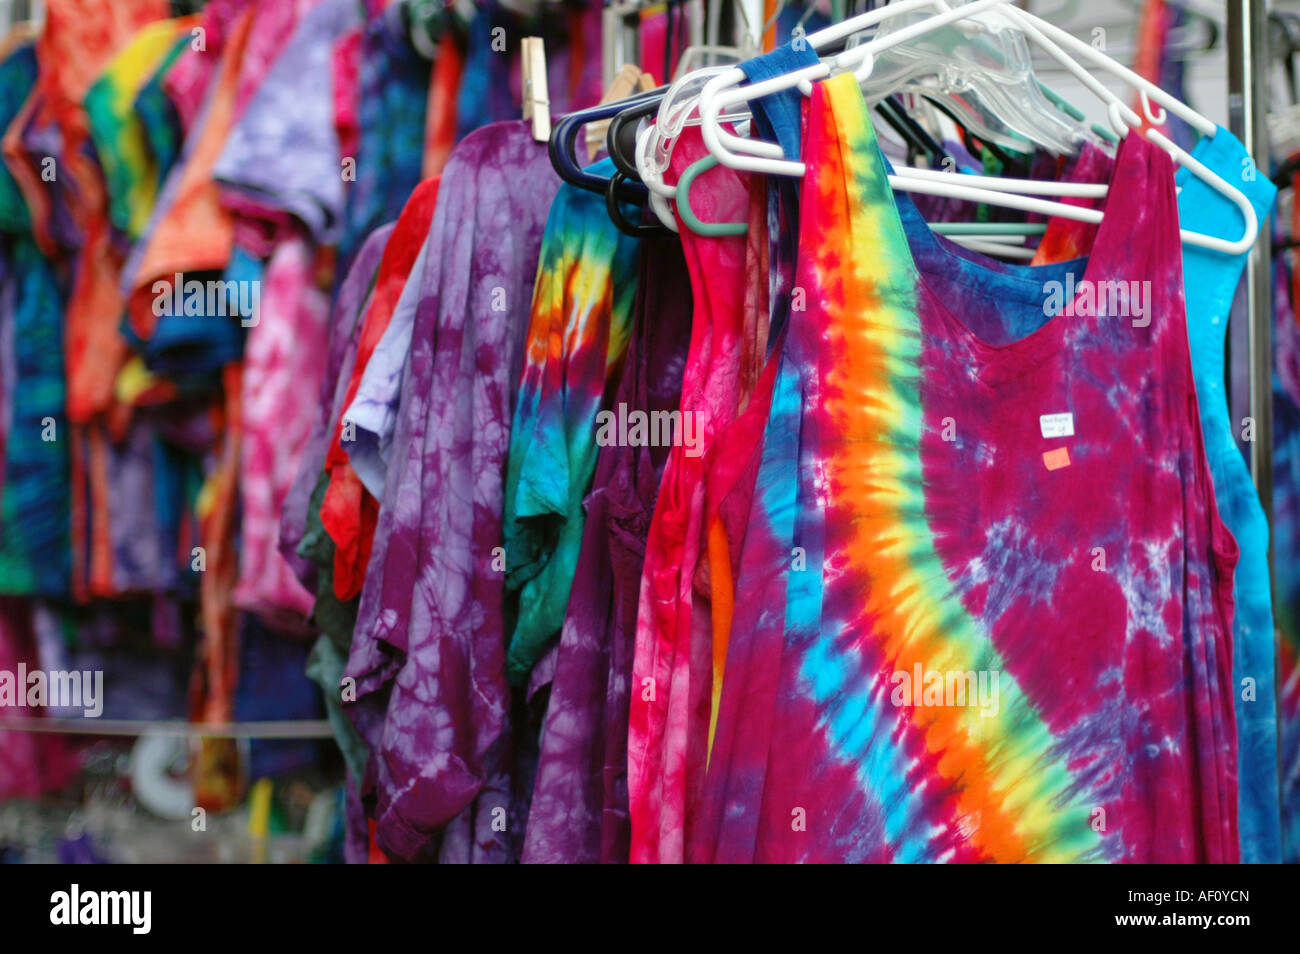 1b6e4300442 Tie-dye shirts on sale at a fair Stock Photo  13795076 - Alamy